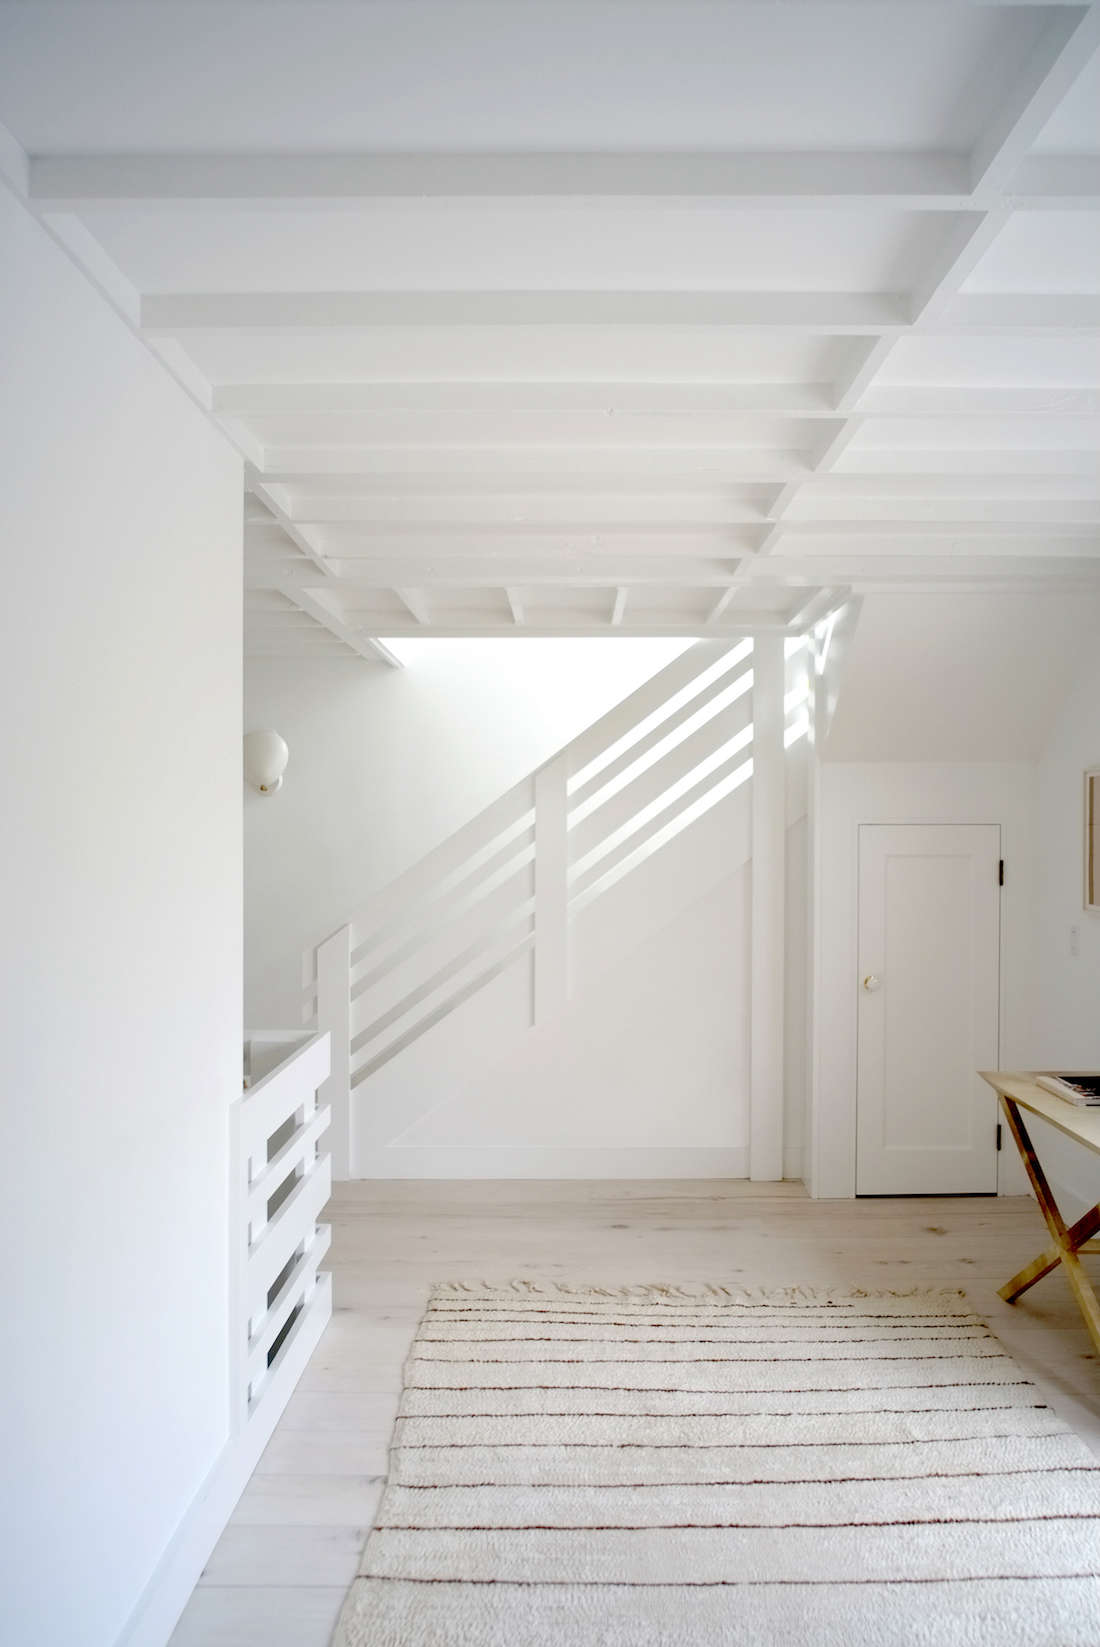 In the renovation of a Montauk beach house, Brooklyn architects Space Exploration painted the entire house in Benjamin Moore's Super White, with a flat finish on the walls and satin on the ceilings. Photograph courtesy of Space Exploration from our post The Simple Life: A Montauk Beach House for a Creative Couple.